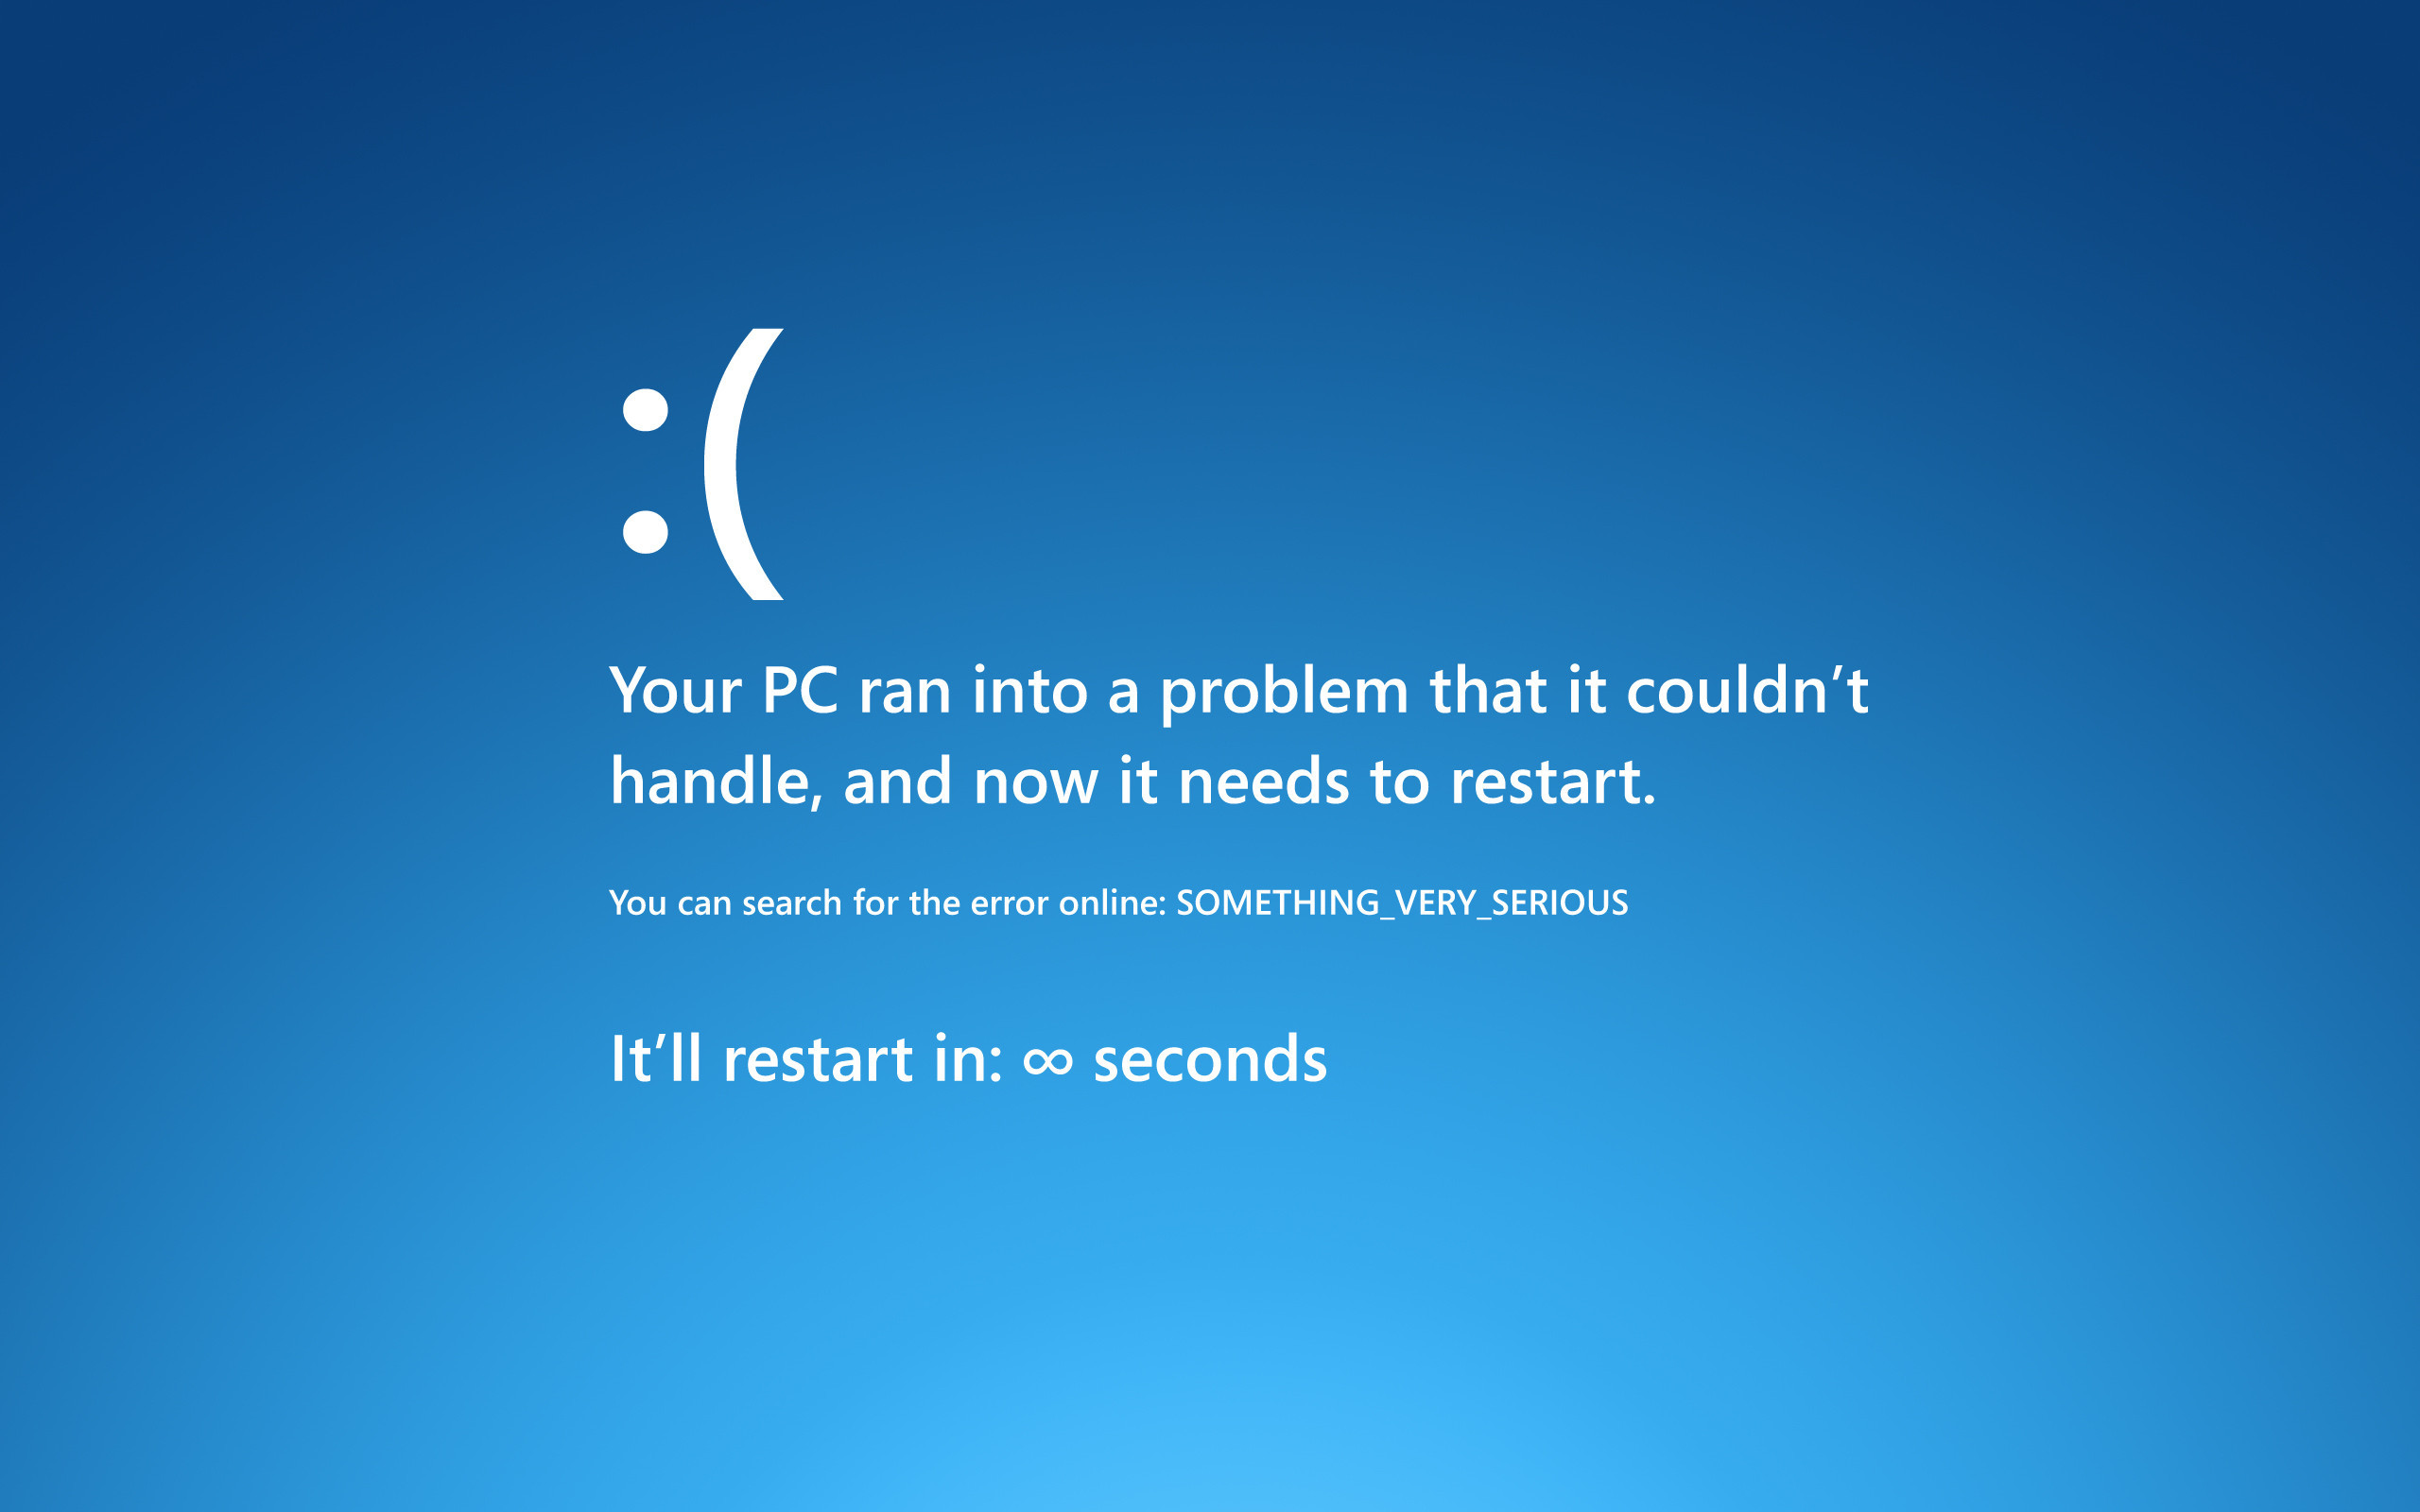 2560x1600 The Windows Blue Screen of Death Makes a Hilarious iPad Lock Screen